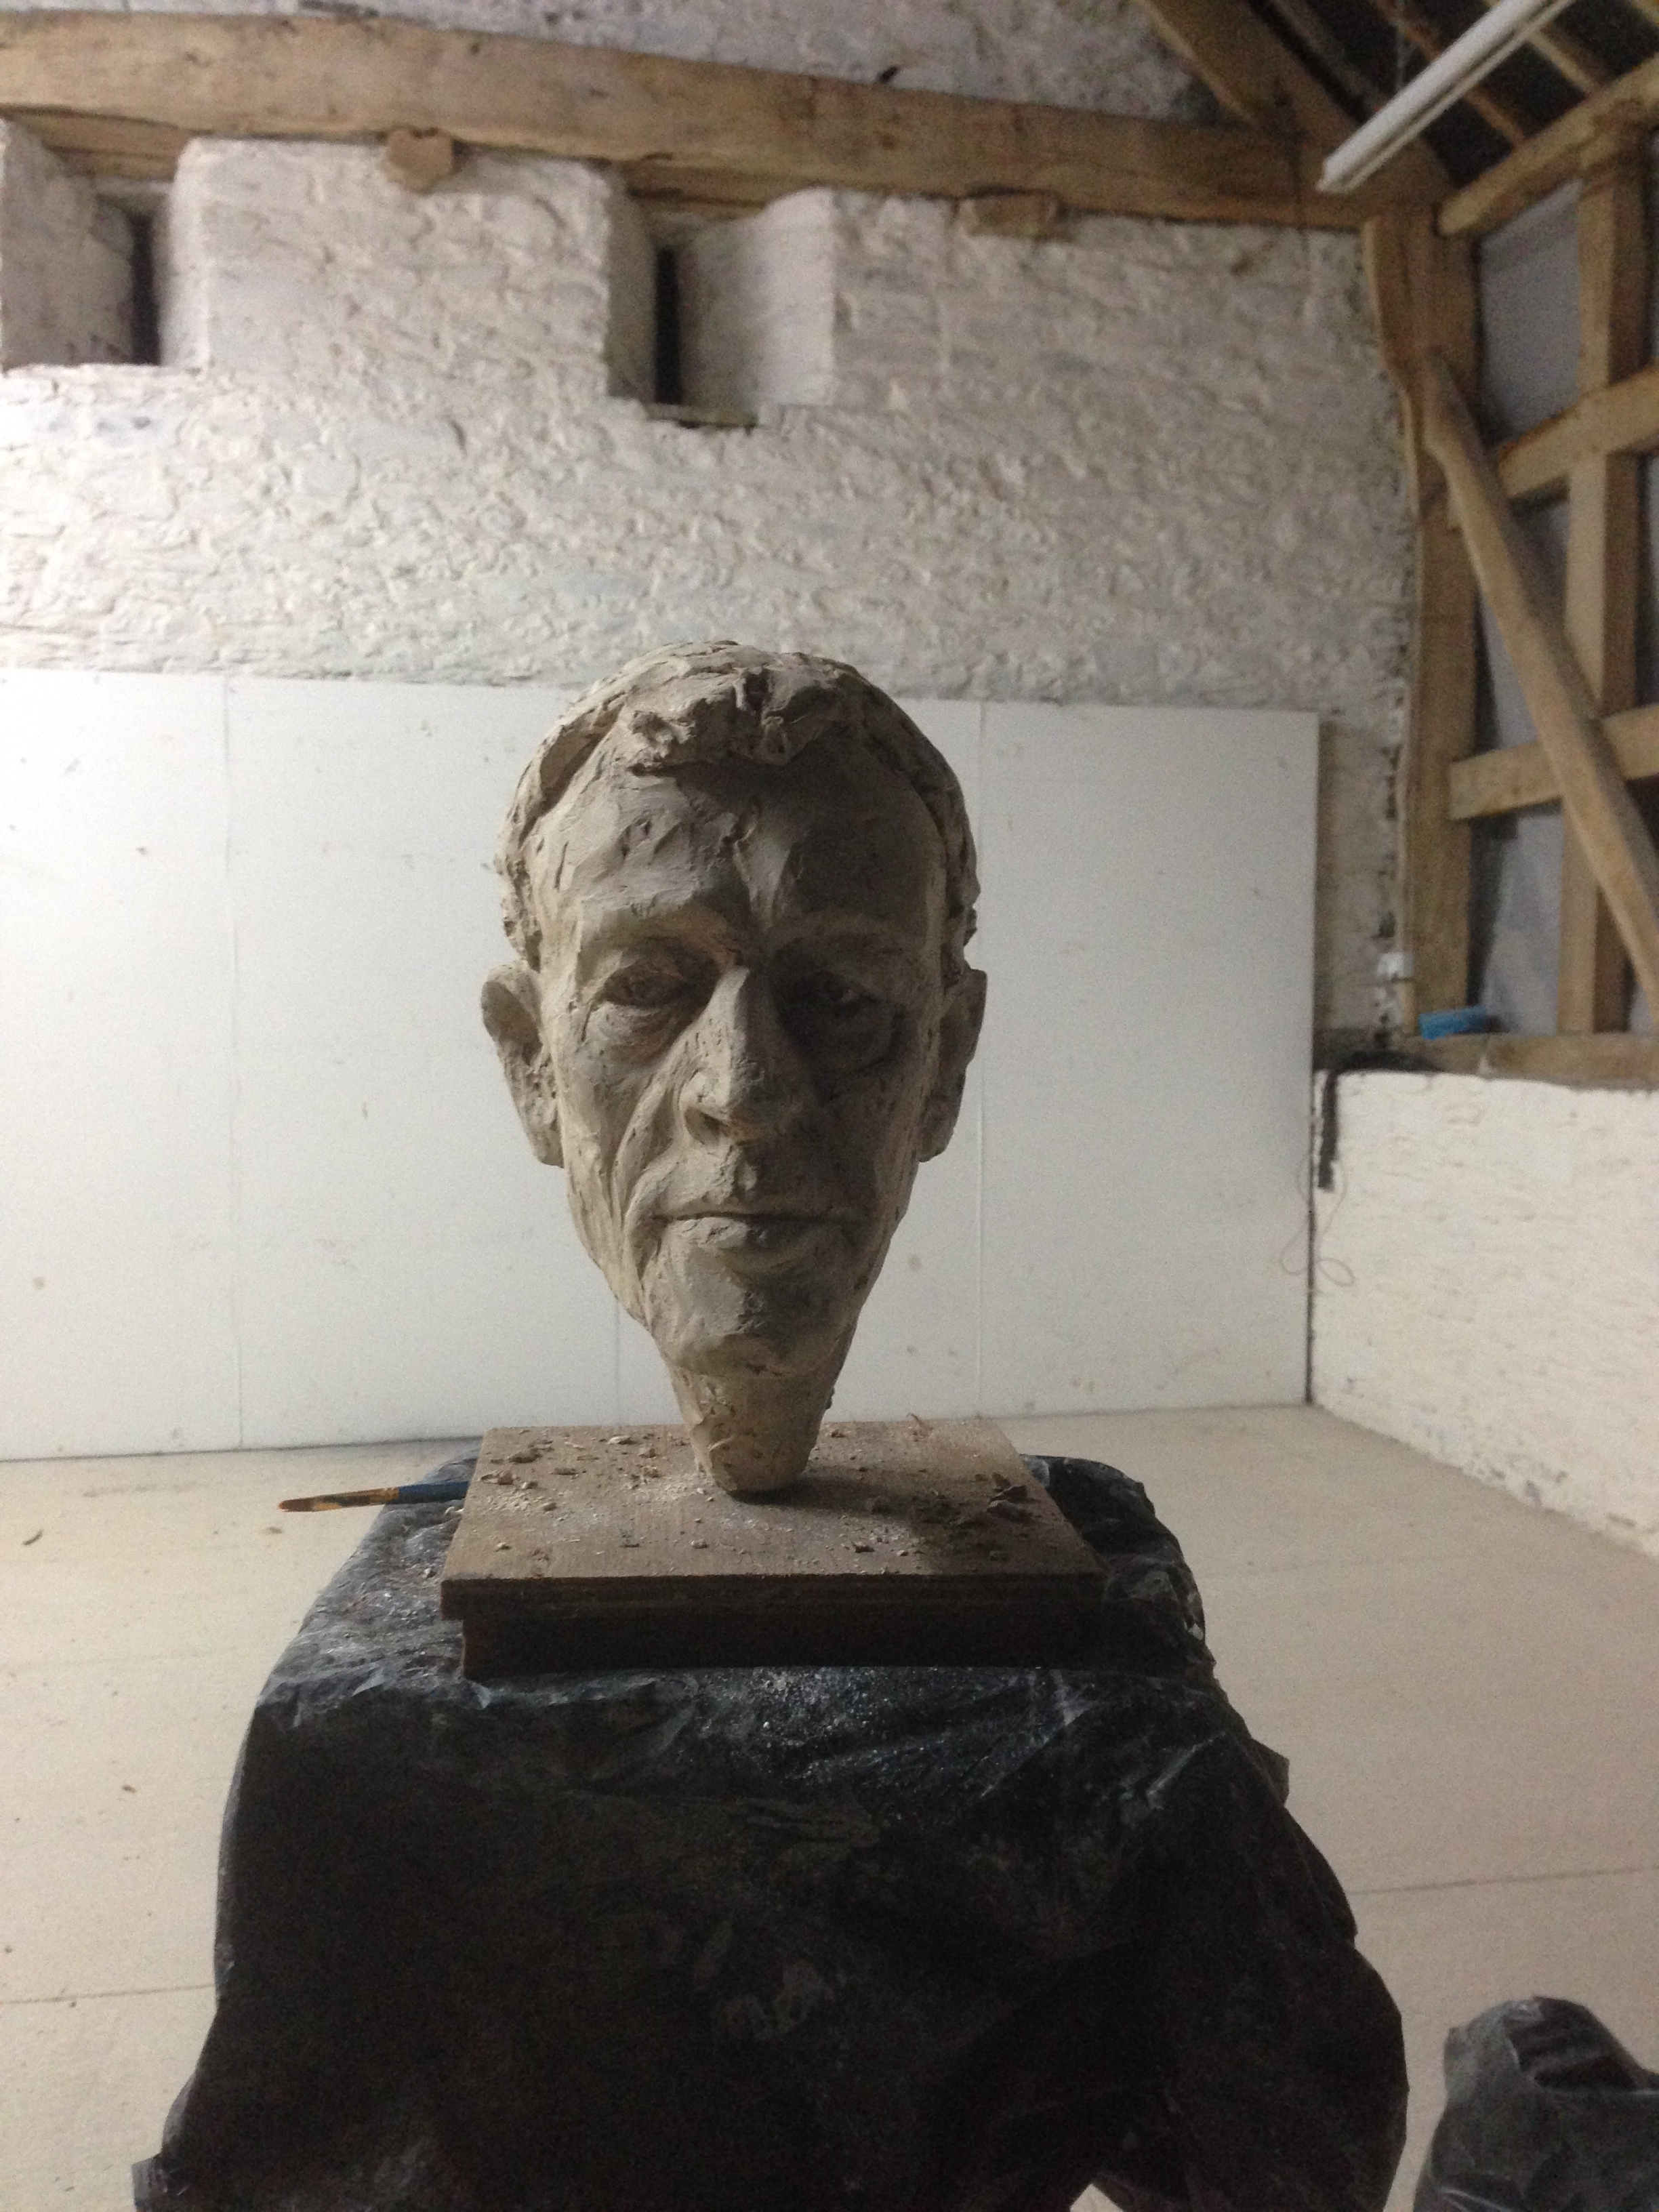 sculpting the head in plaster